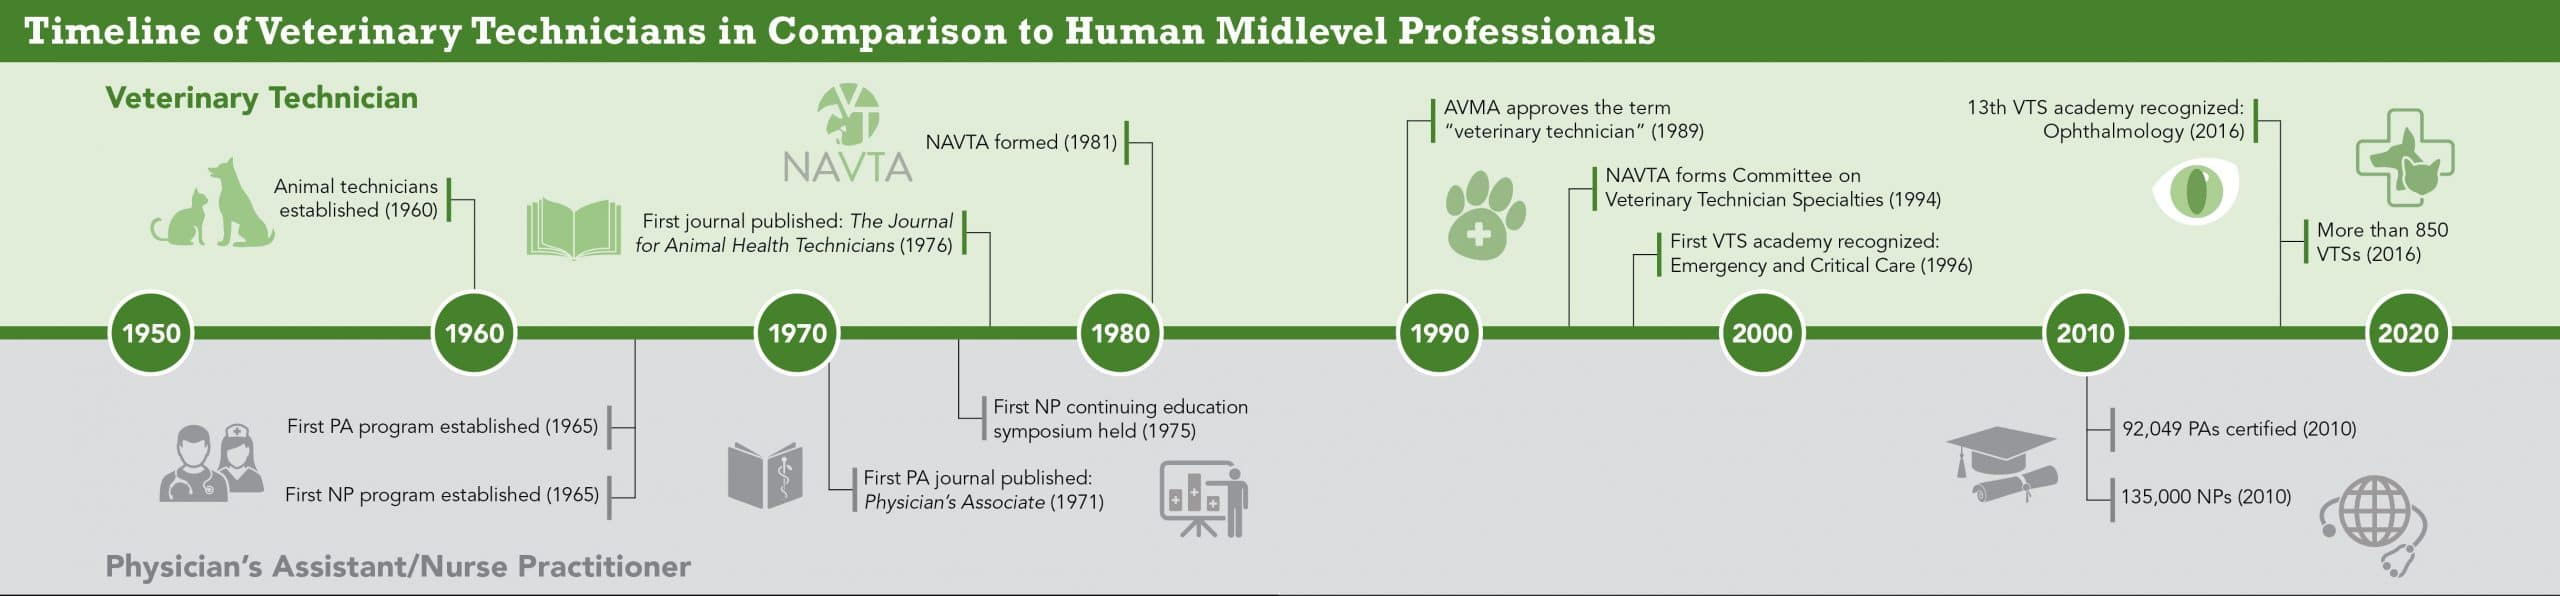 Timeline of Veterinary Technicians in Comparison to Human Midlevel Professionals